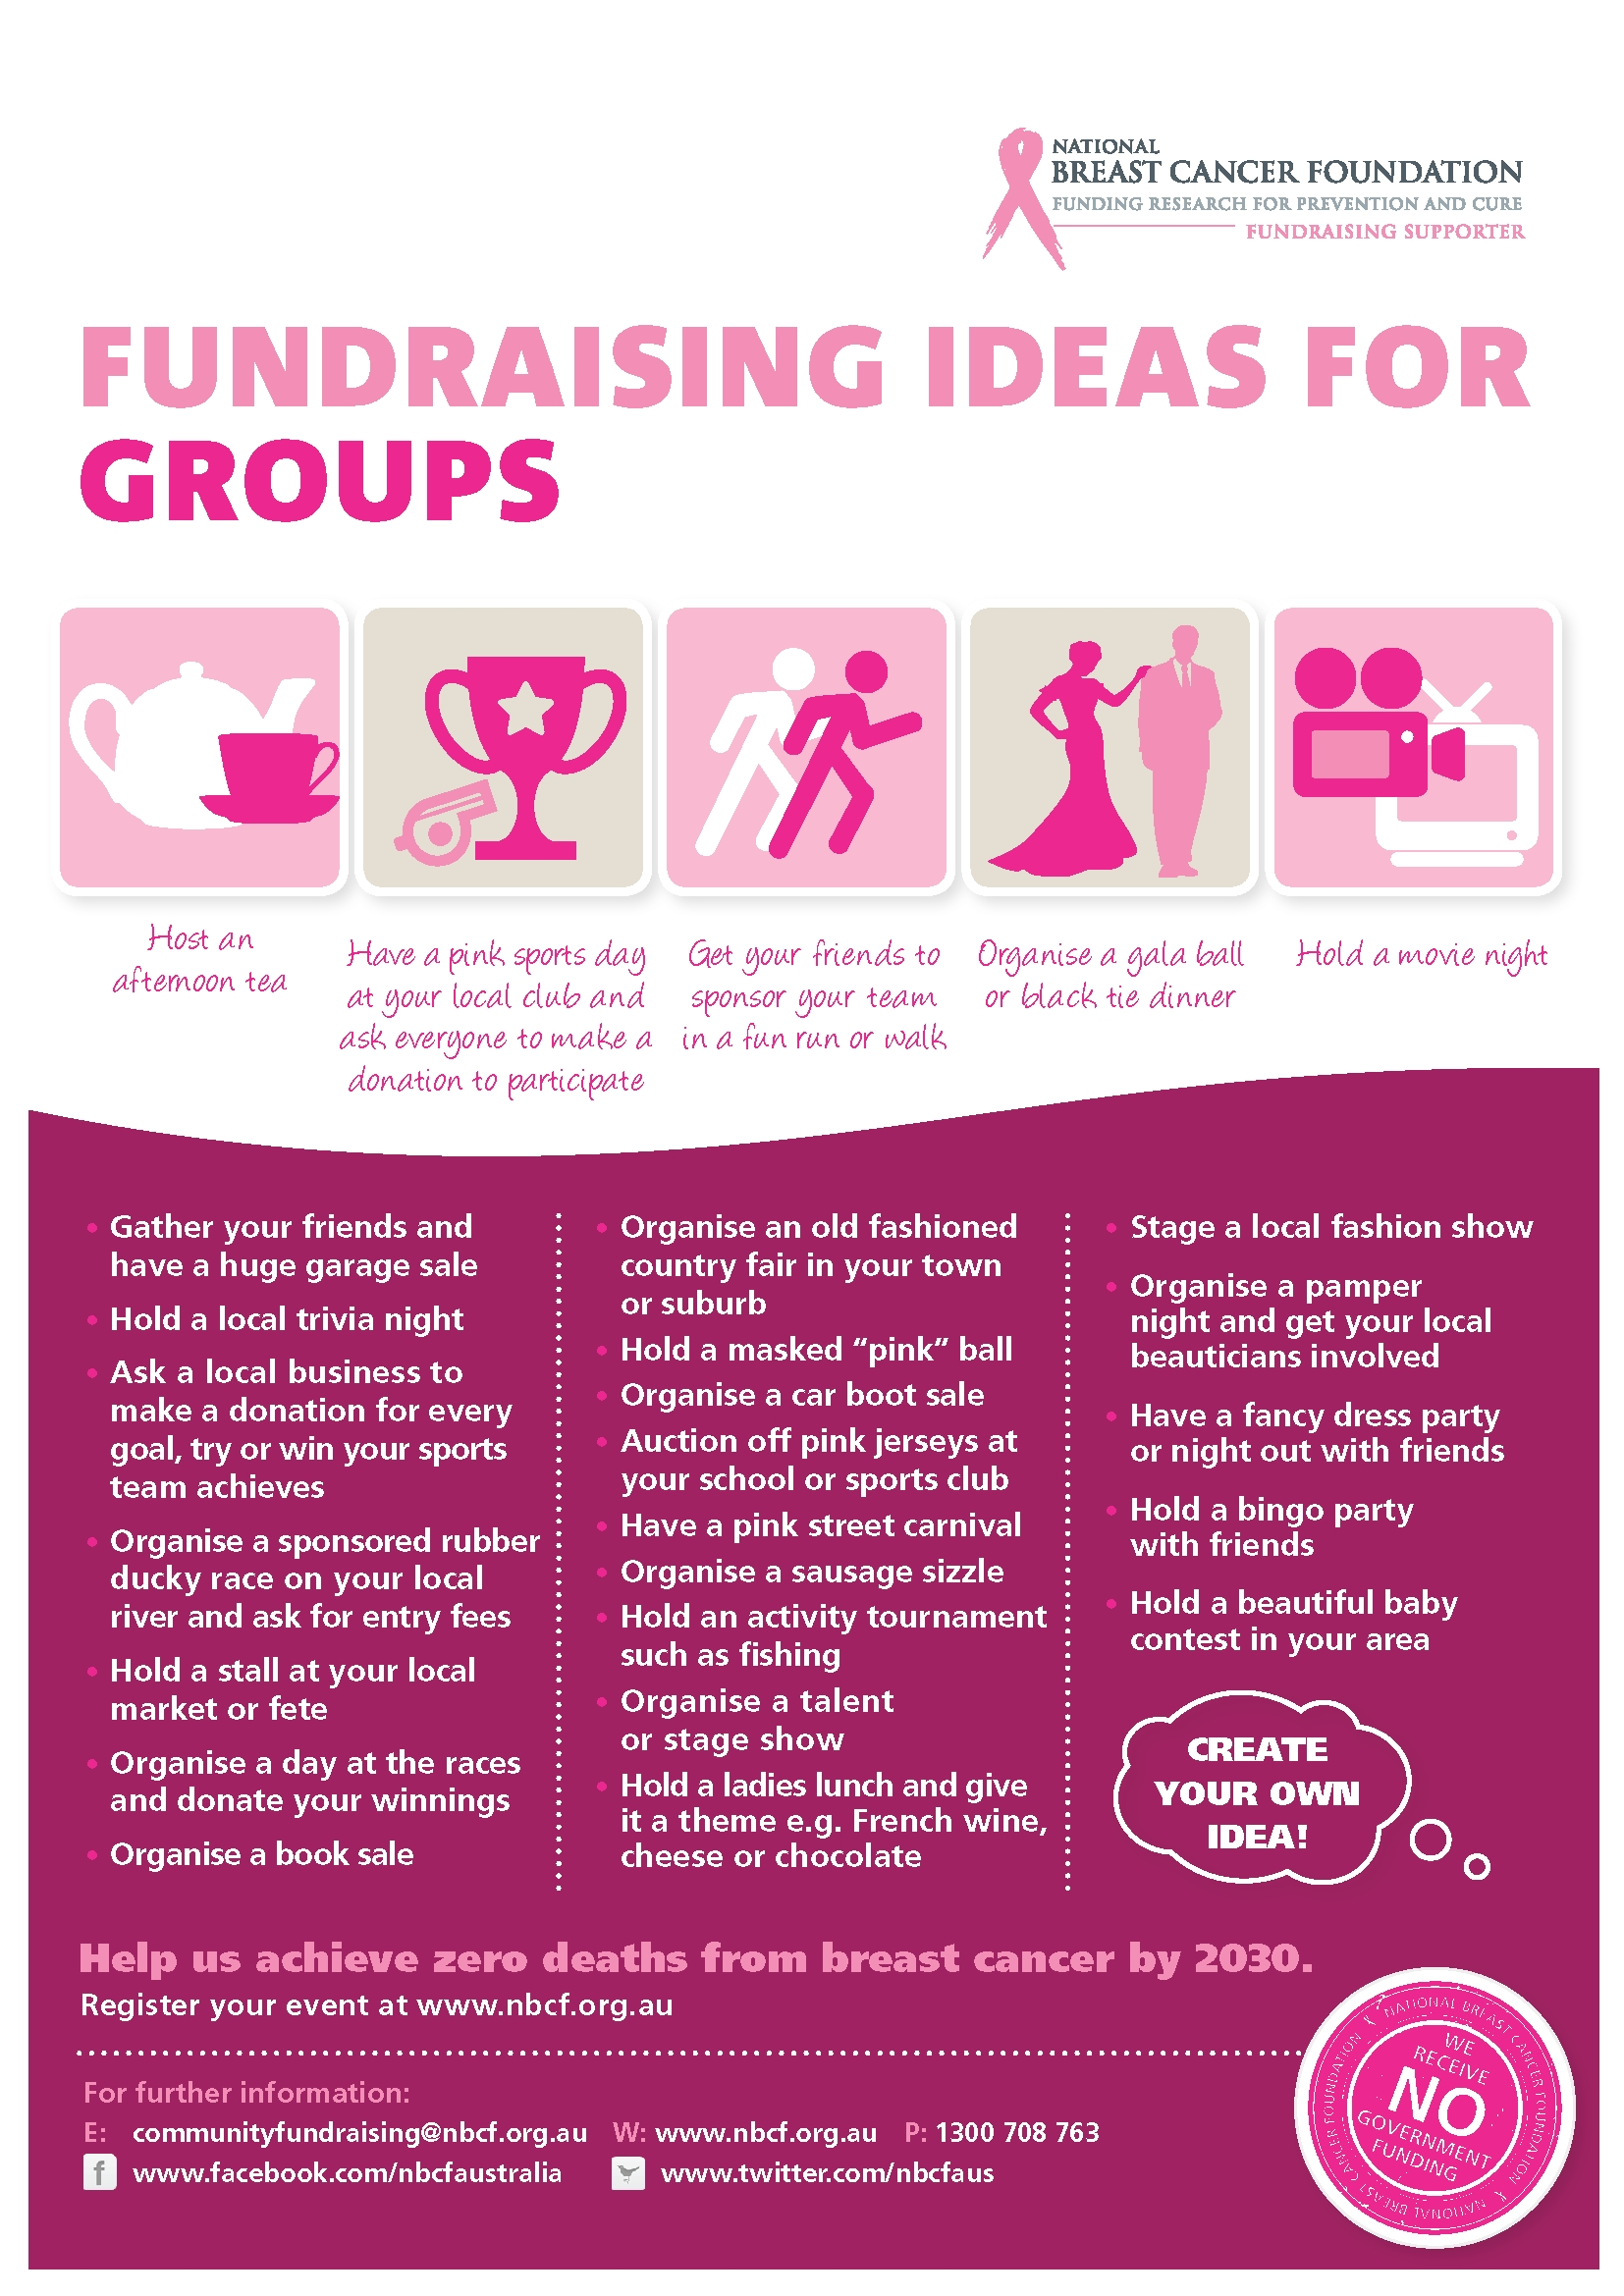 group fundraising ideas via the national breast cancer foundation